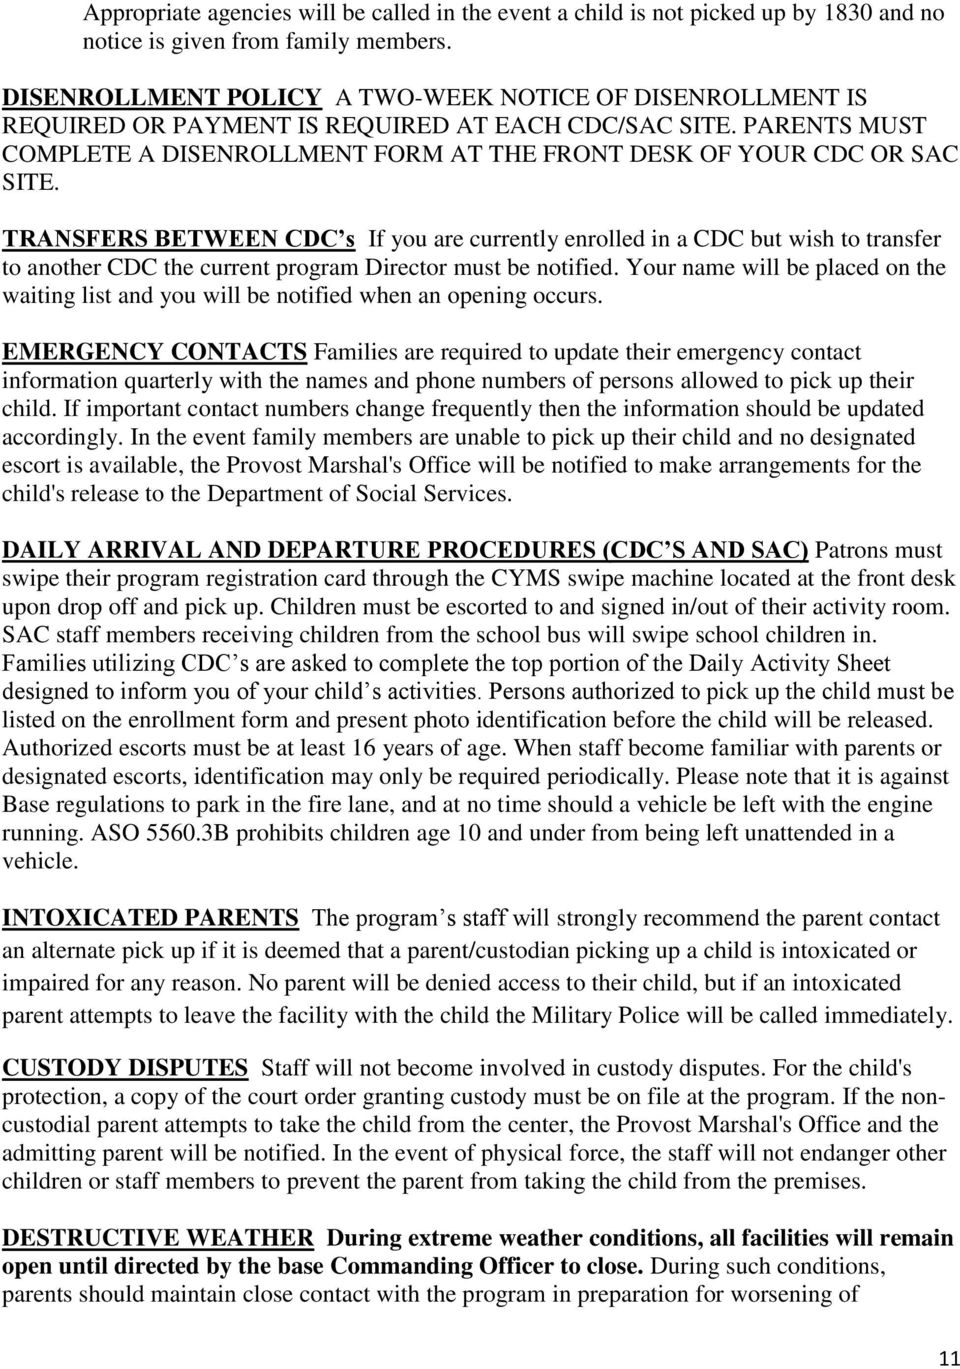 TRANSFERS BETWEEN CDC s If you are currently enrolled in a CDC but wish to transfer to another CDC the current program Director must be notified.